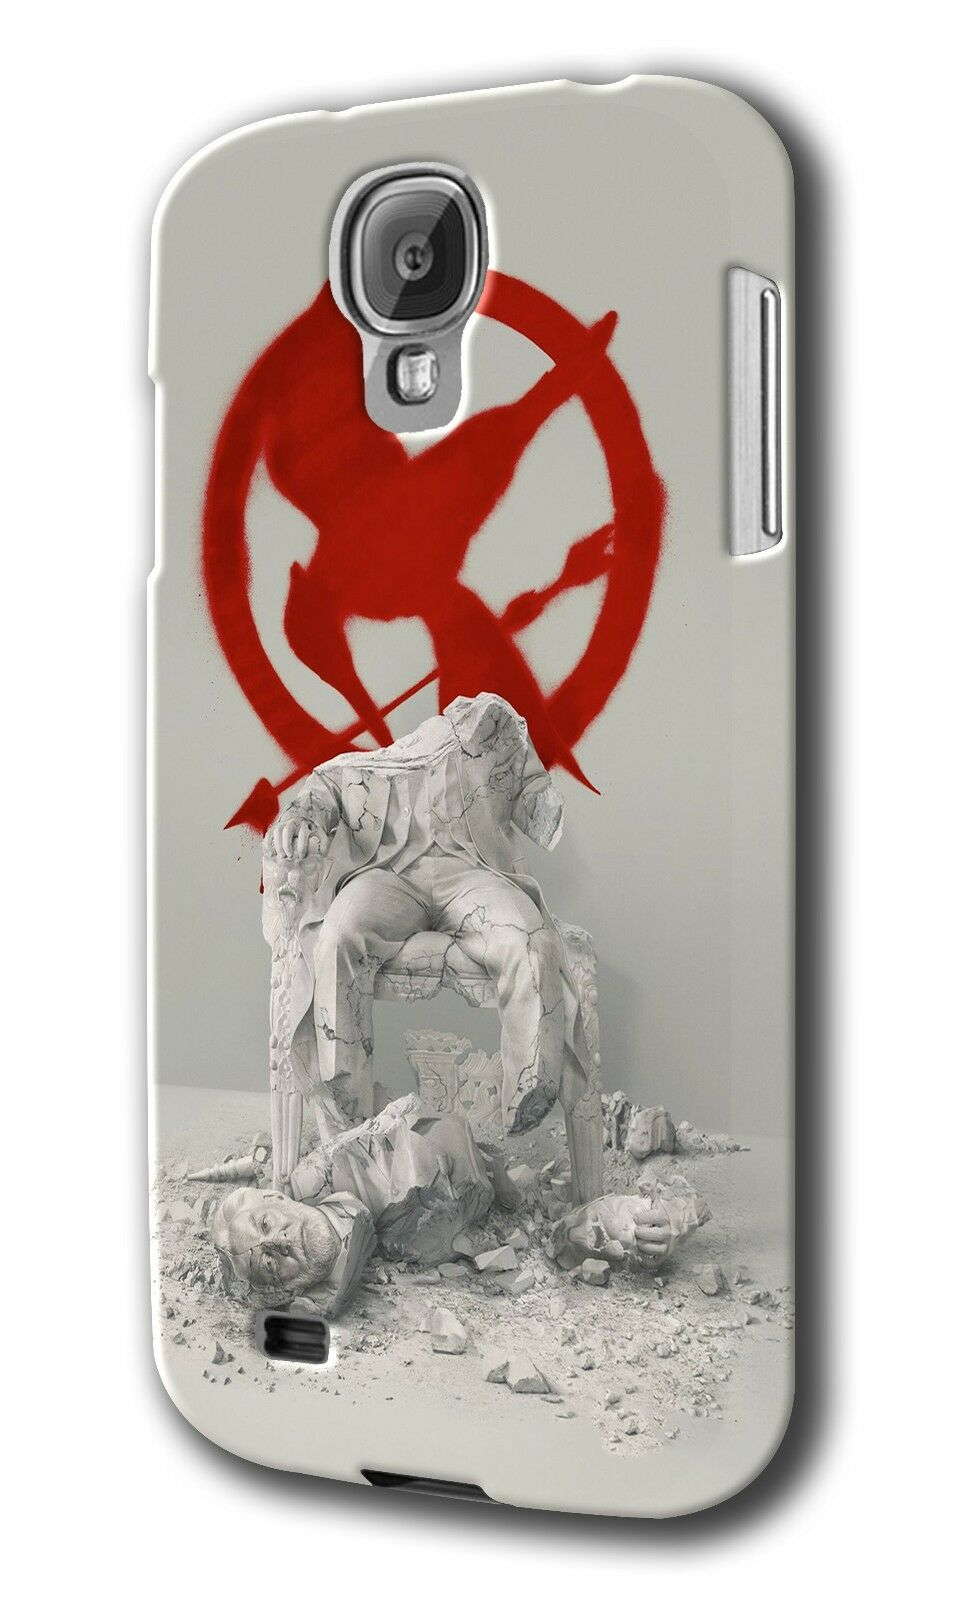 The Hunger Games Mockingjay Samsung Galaxy S4 S5 S6 Edge Note 3 4 5 +  Plus Case